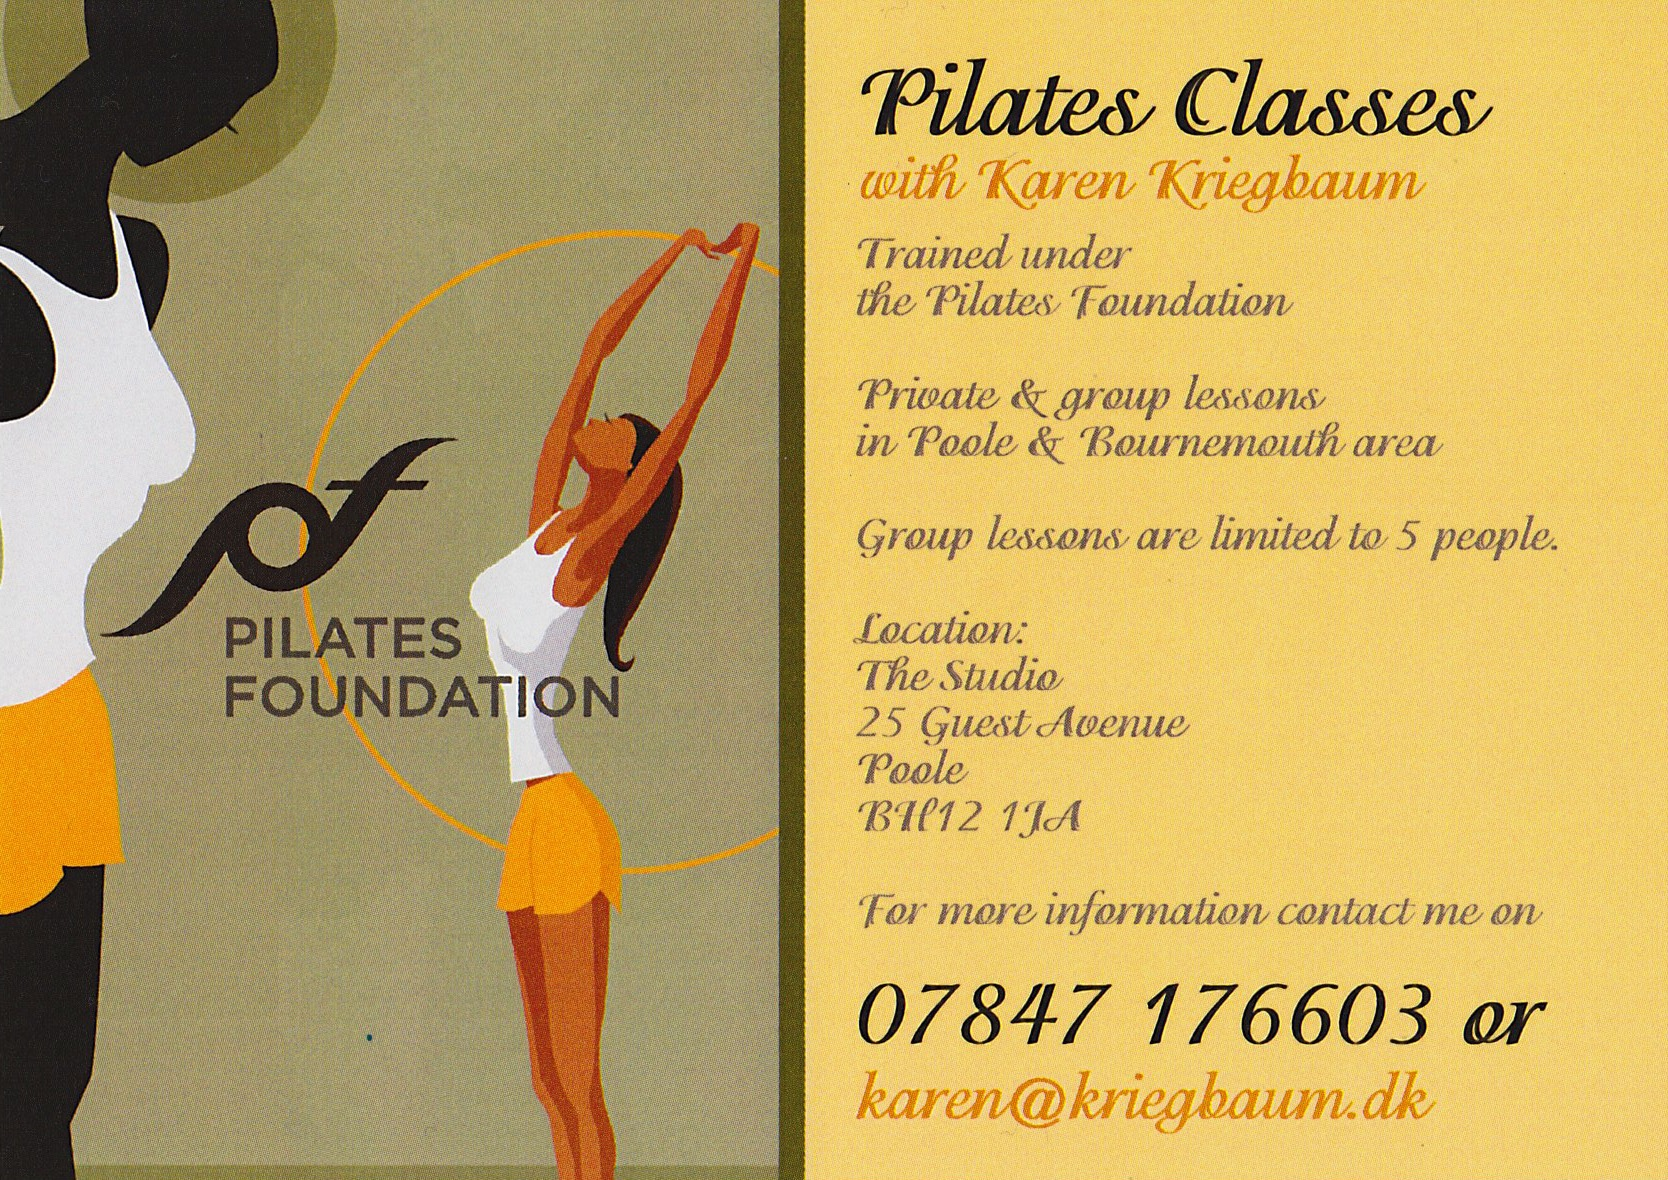 Pilates Classes in Poole & Bournemouth